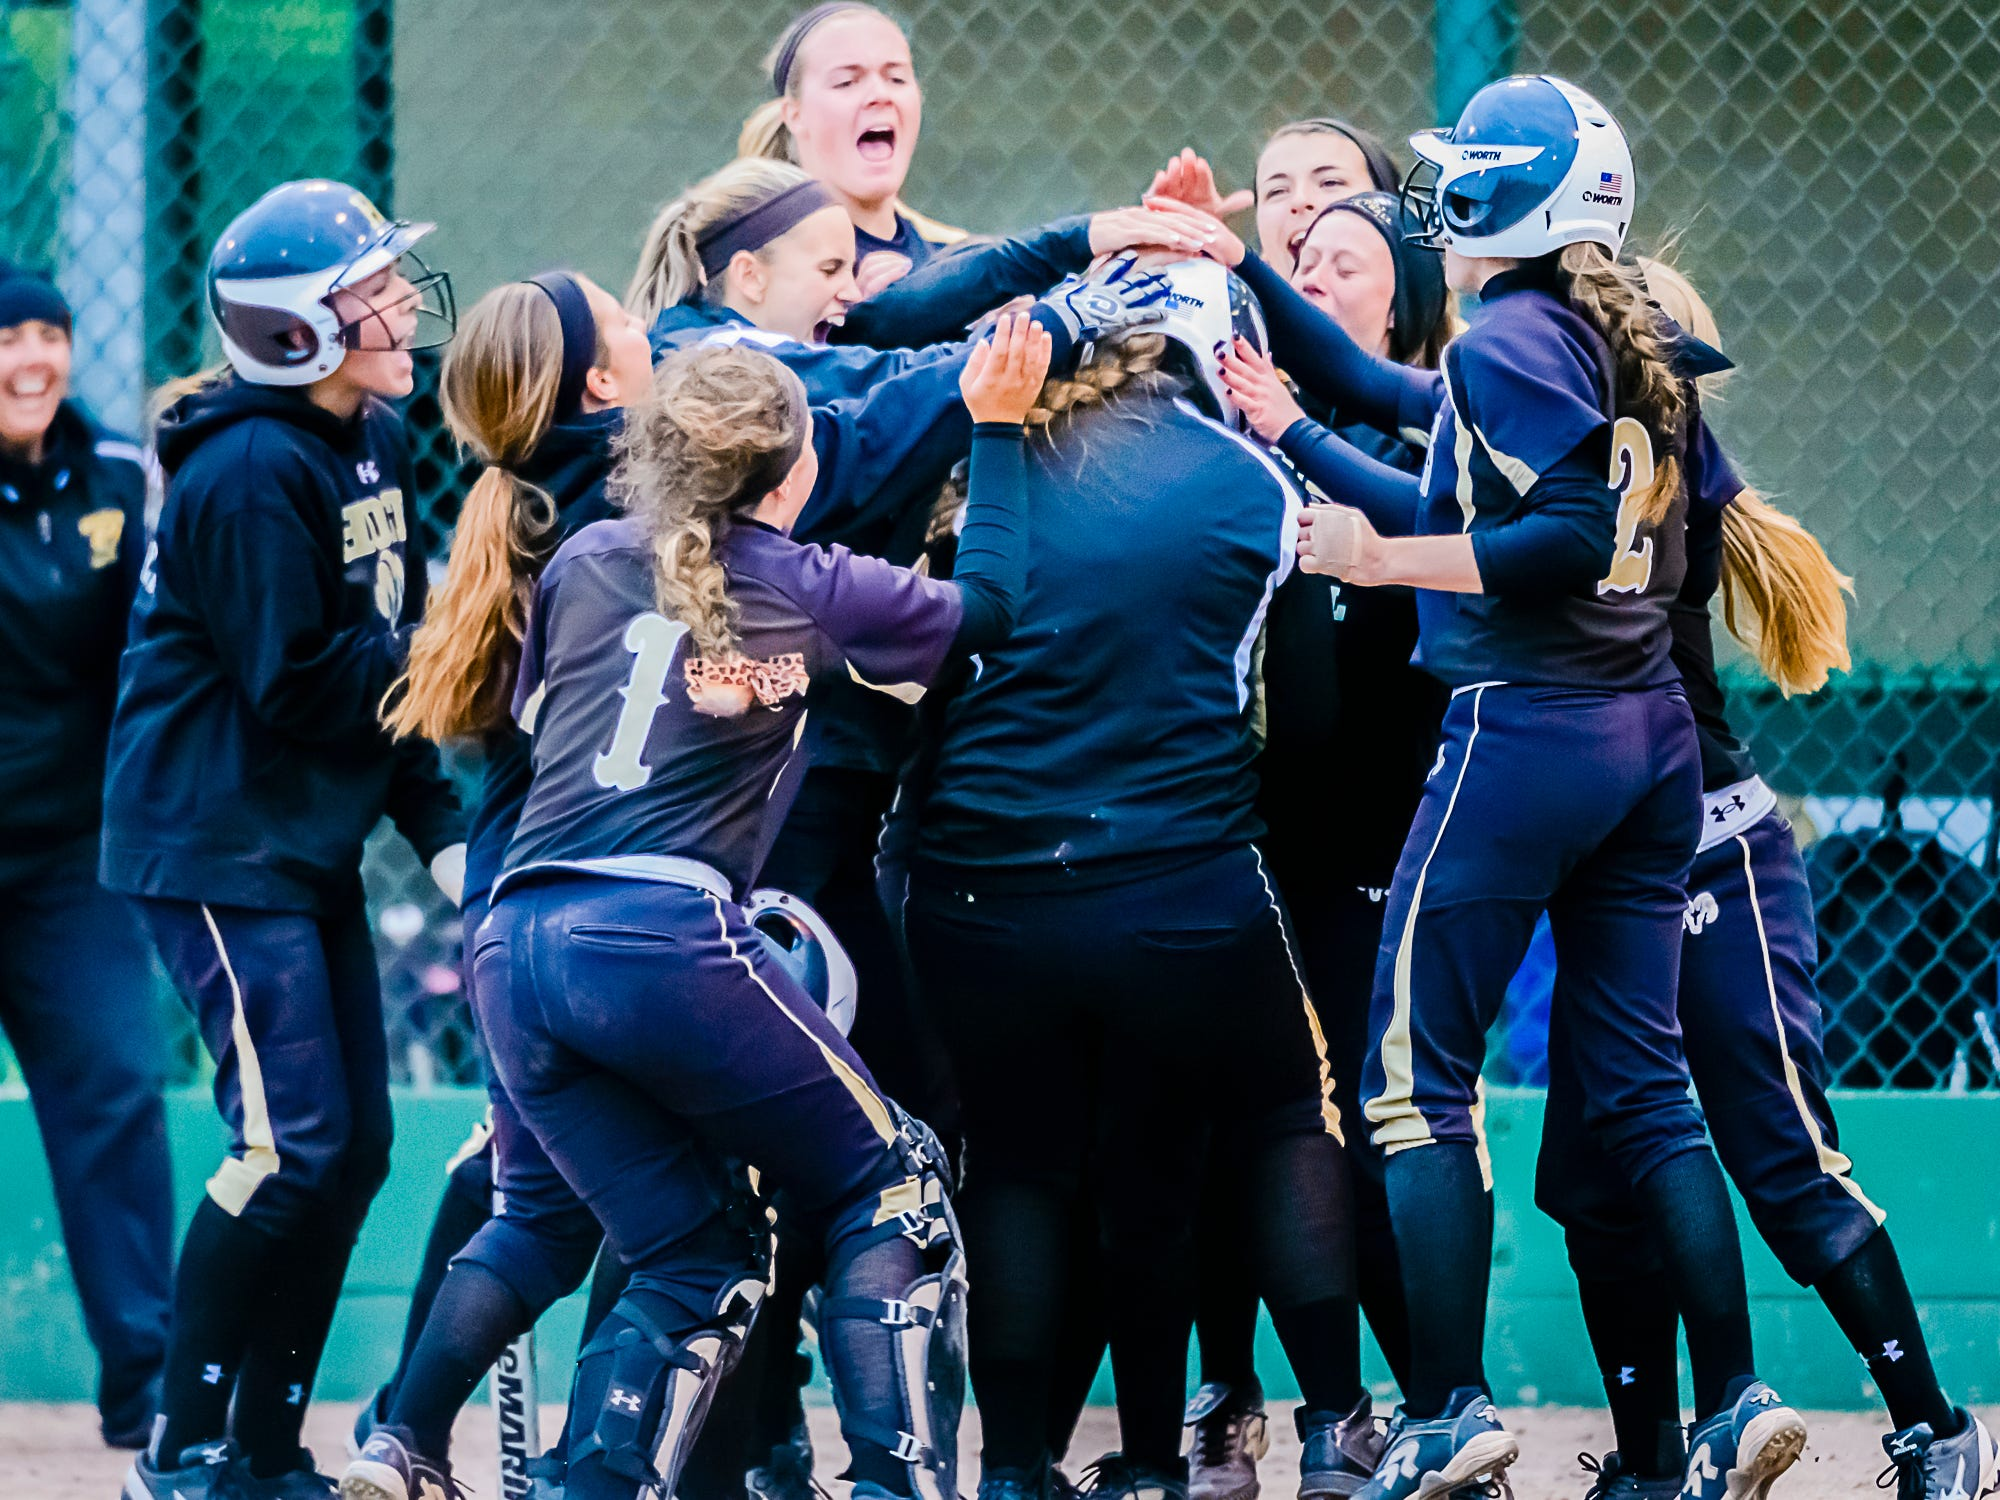 Mackinley Lane ,center, of Holt is congratulated by her teammates after hitting a 2-run homer in the 3rd inning of their Softball Classic championship game with St. Johns Tuesday May 19, 2015 at Ranney Park in Lansing. KEVIN W. FOWLER PHOTO